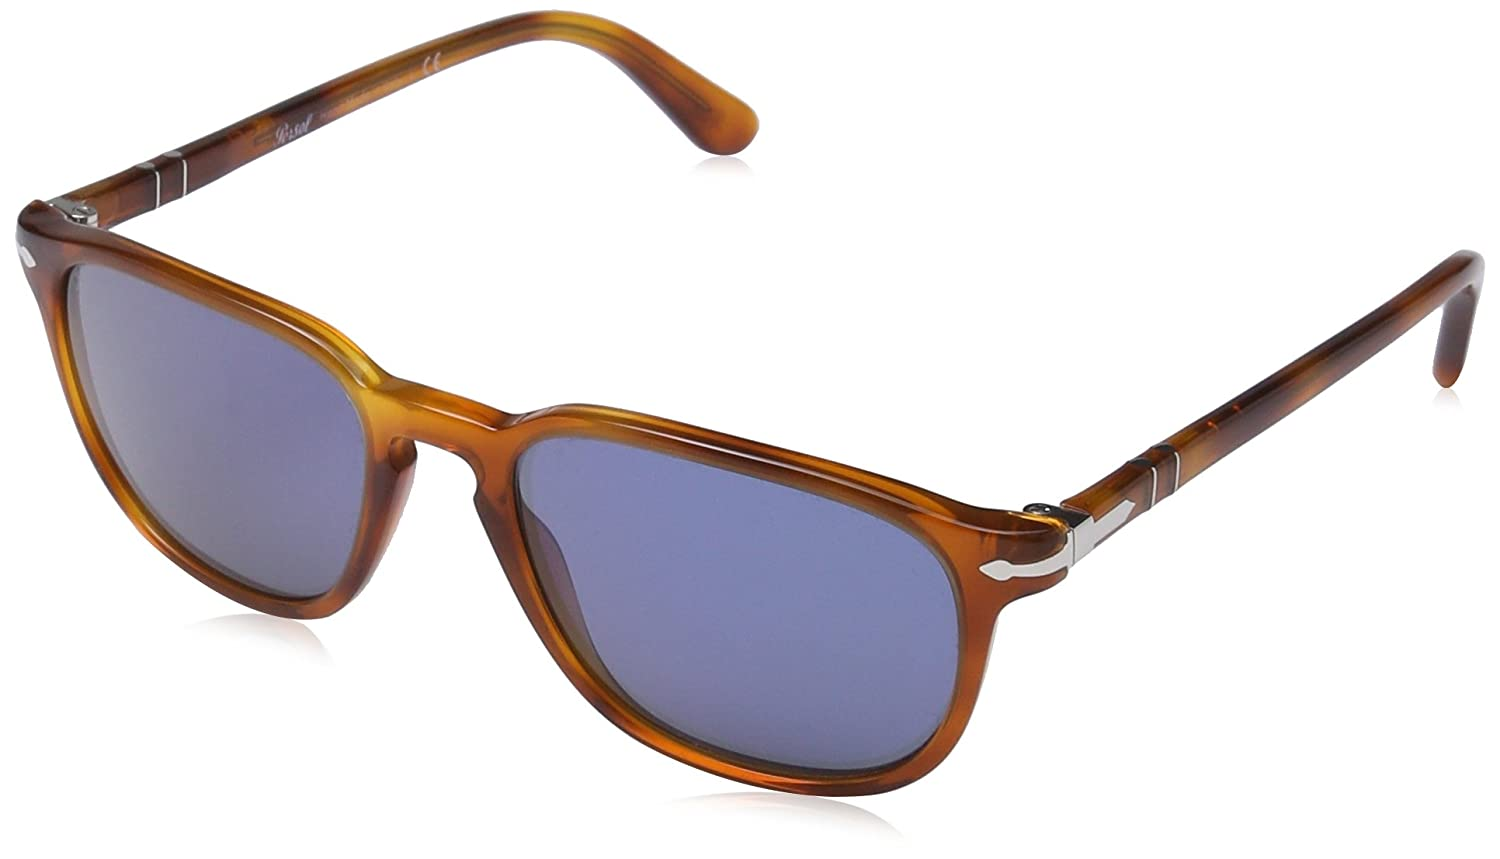 8fa611f90cafe Amazon.com  Persol Men s 0PO3019S 96 56 55 Square Sunglasses